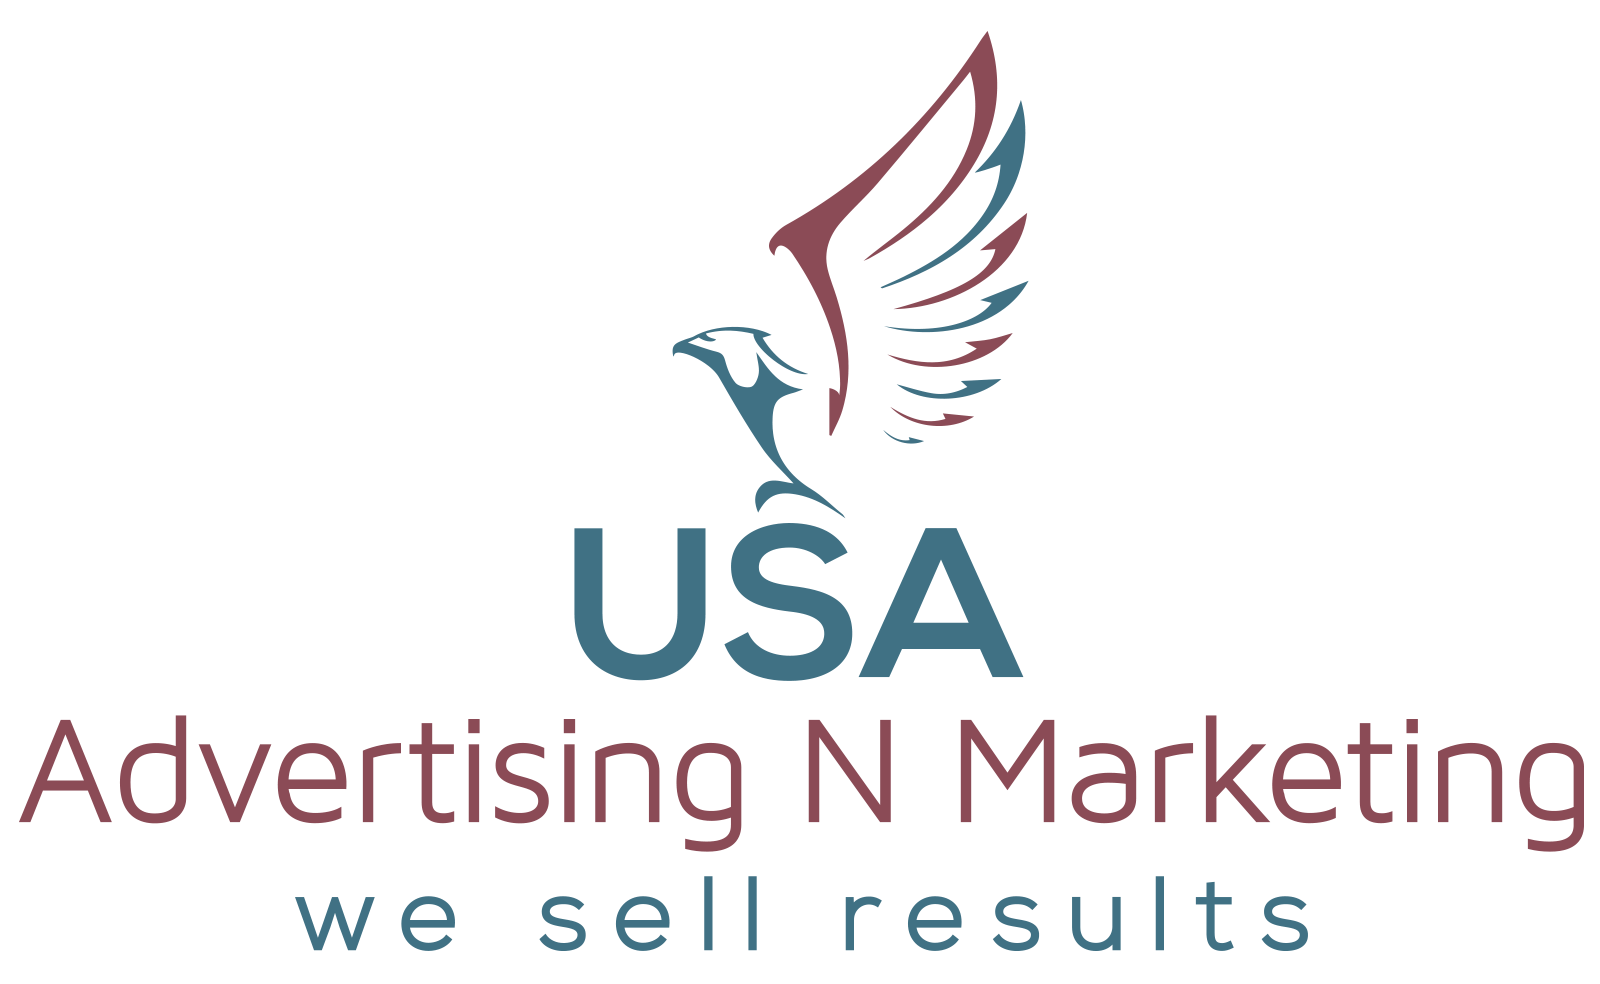 USA Advertising N Marketing